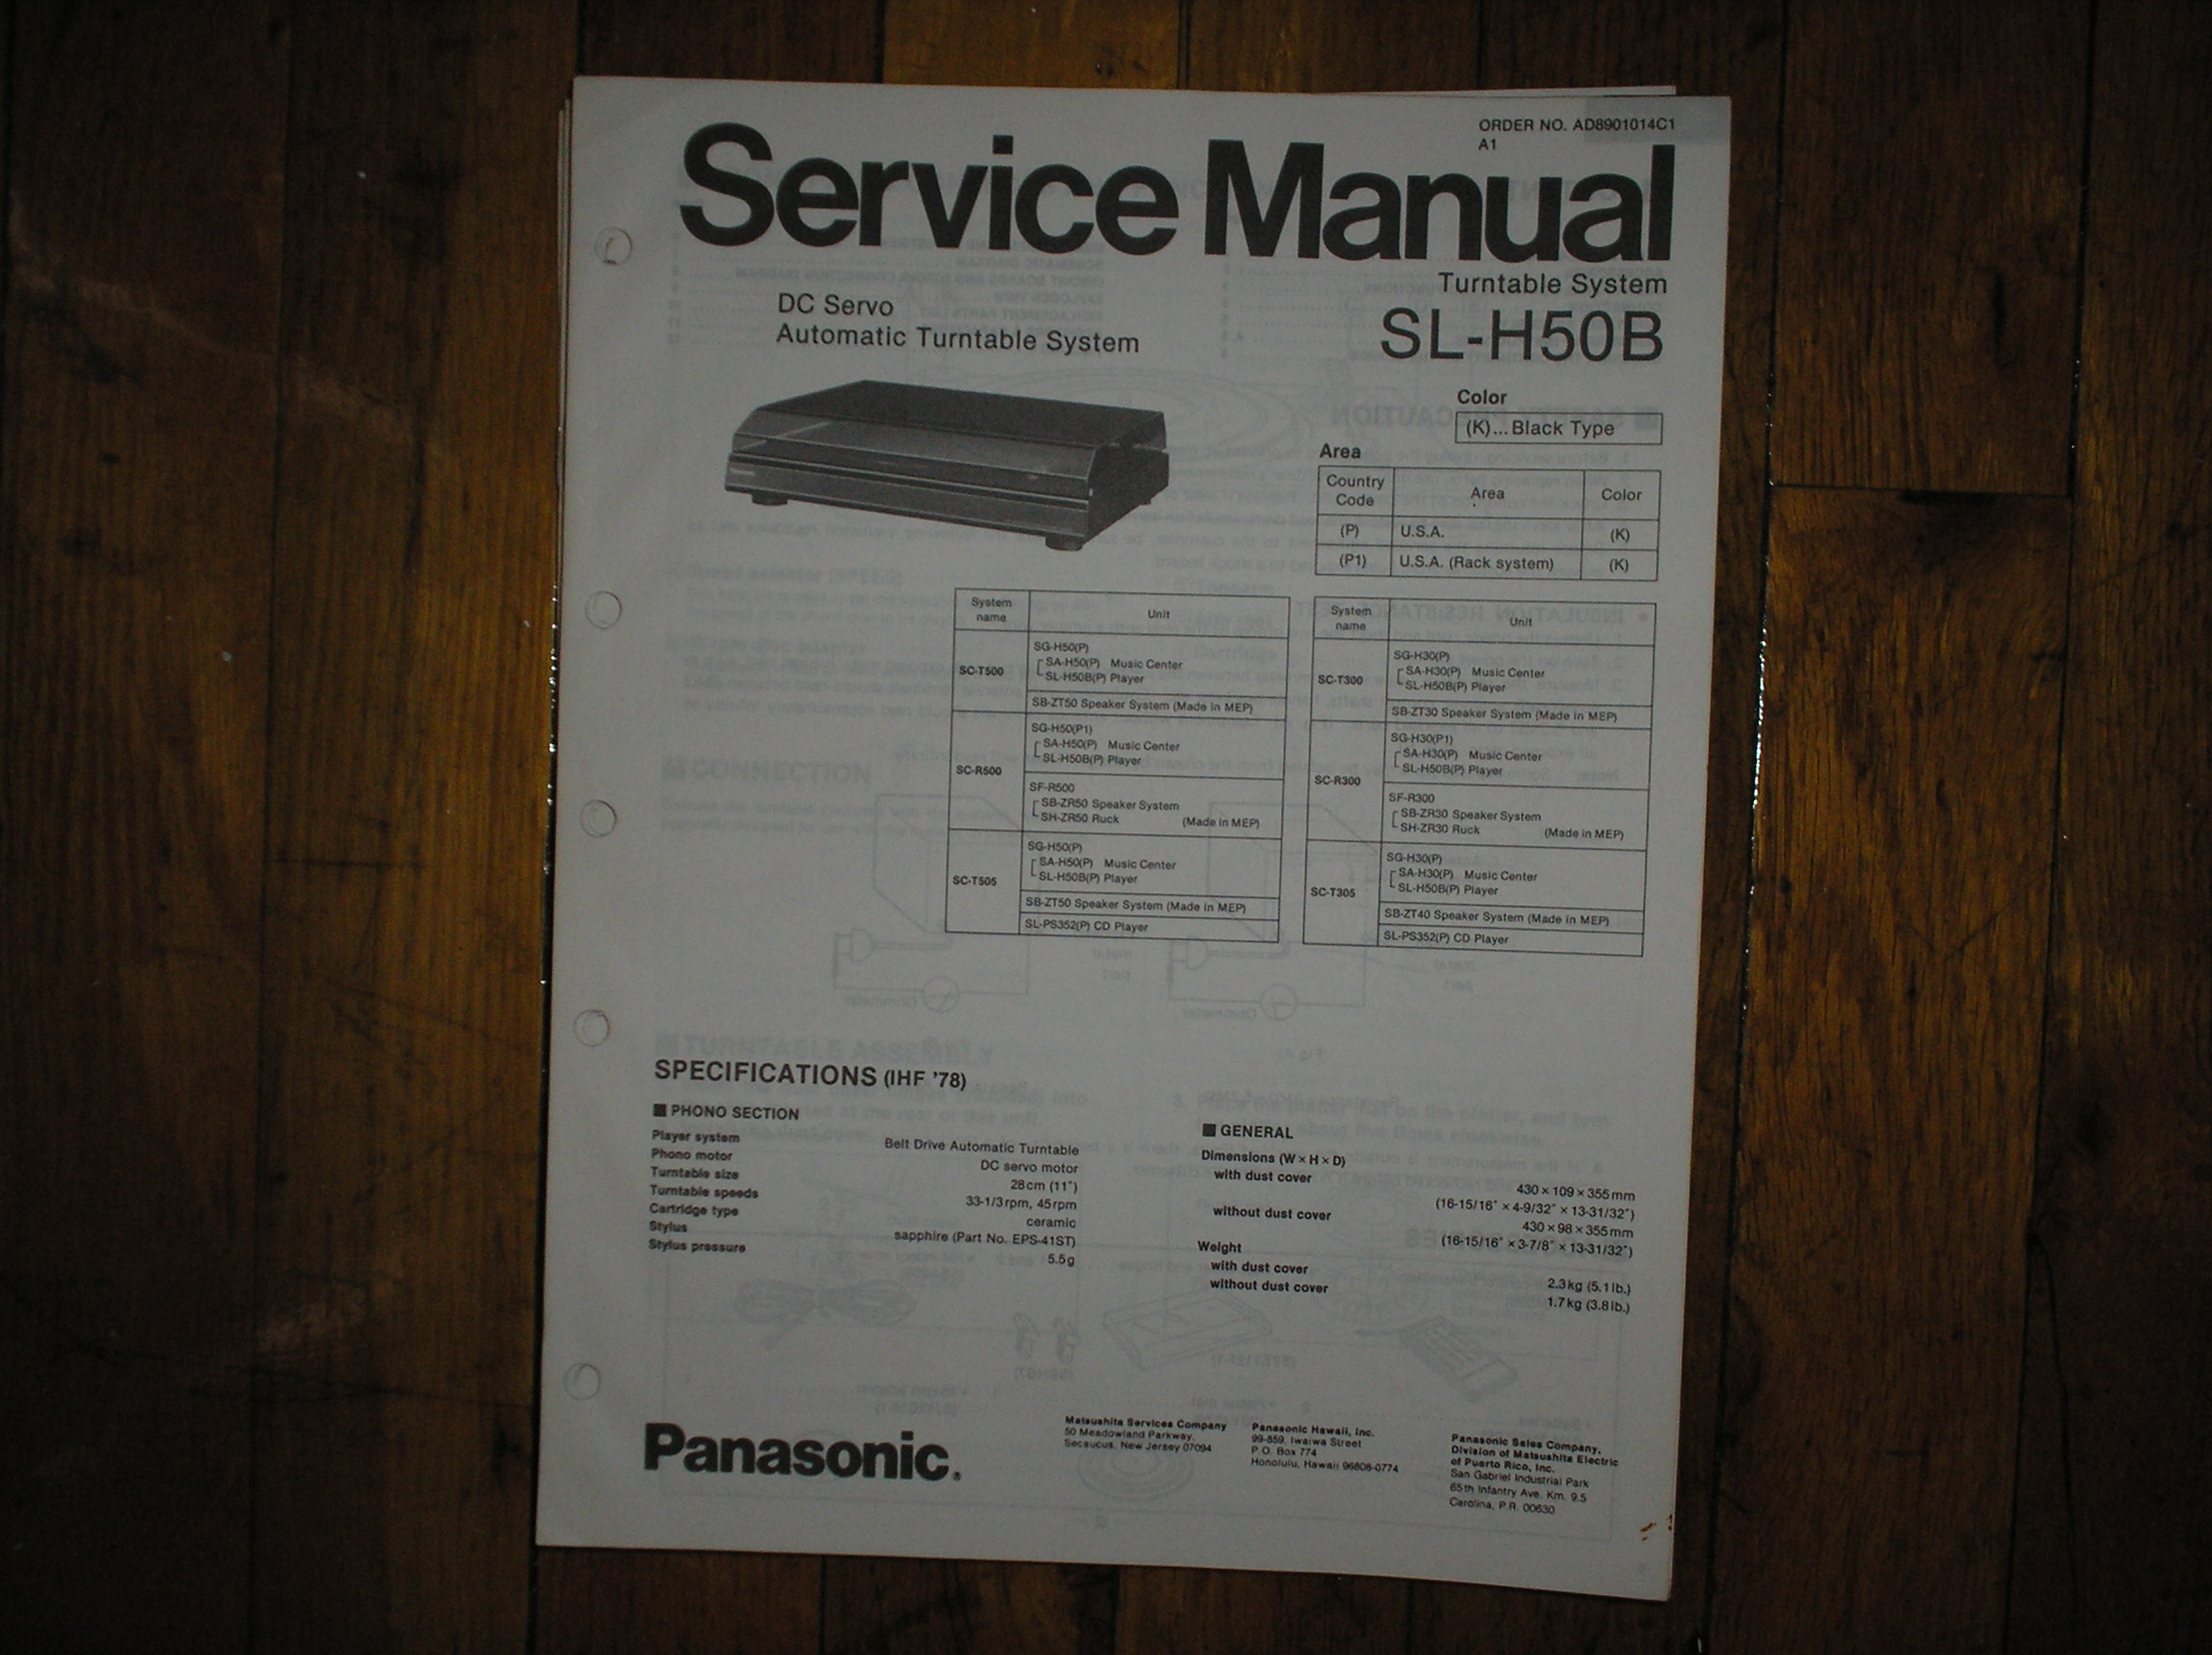 SL-H50B Turntable Service Manual